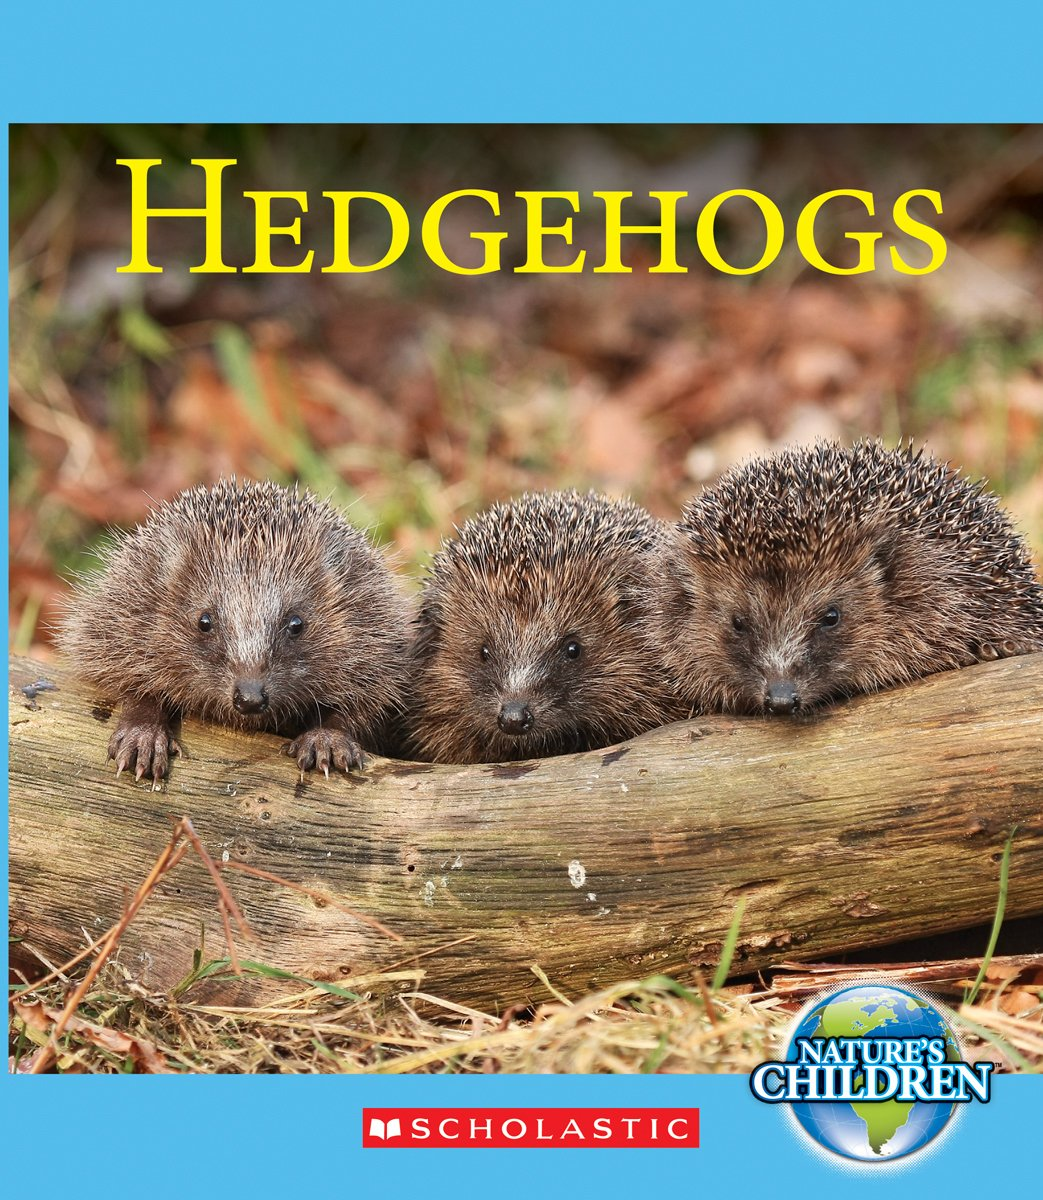 Buy Nature's Children: Hedgehogs (Library Edition) Book Online at Low  Prices in India | Nature's Children: Hedgehogs (Library Edition) Reviews &  Ratings ...